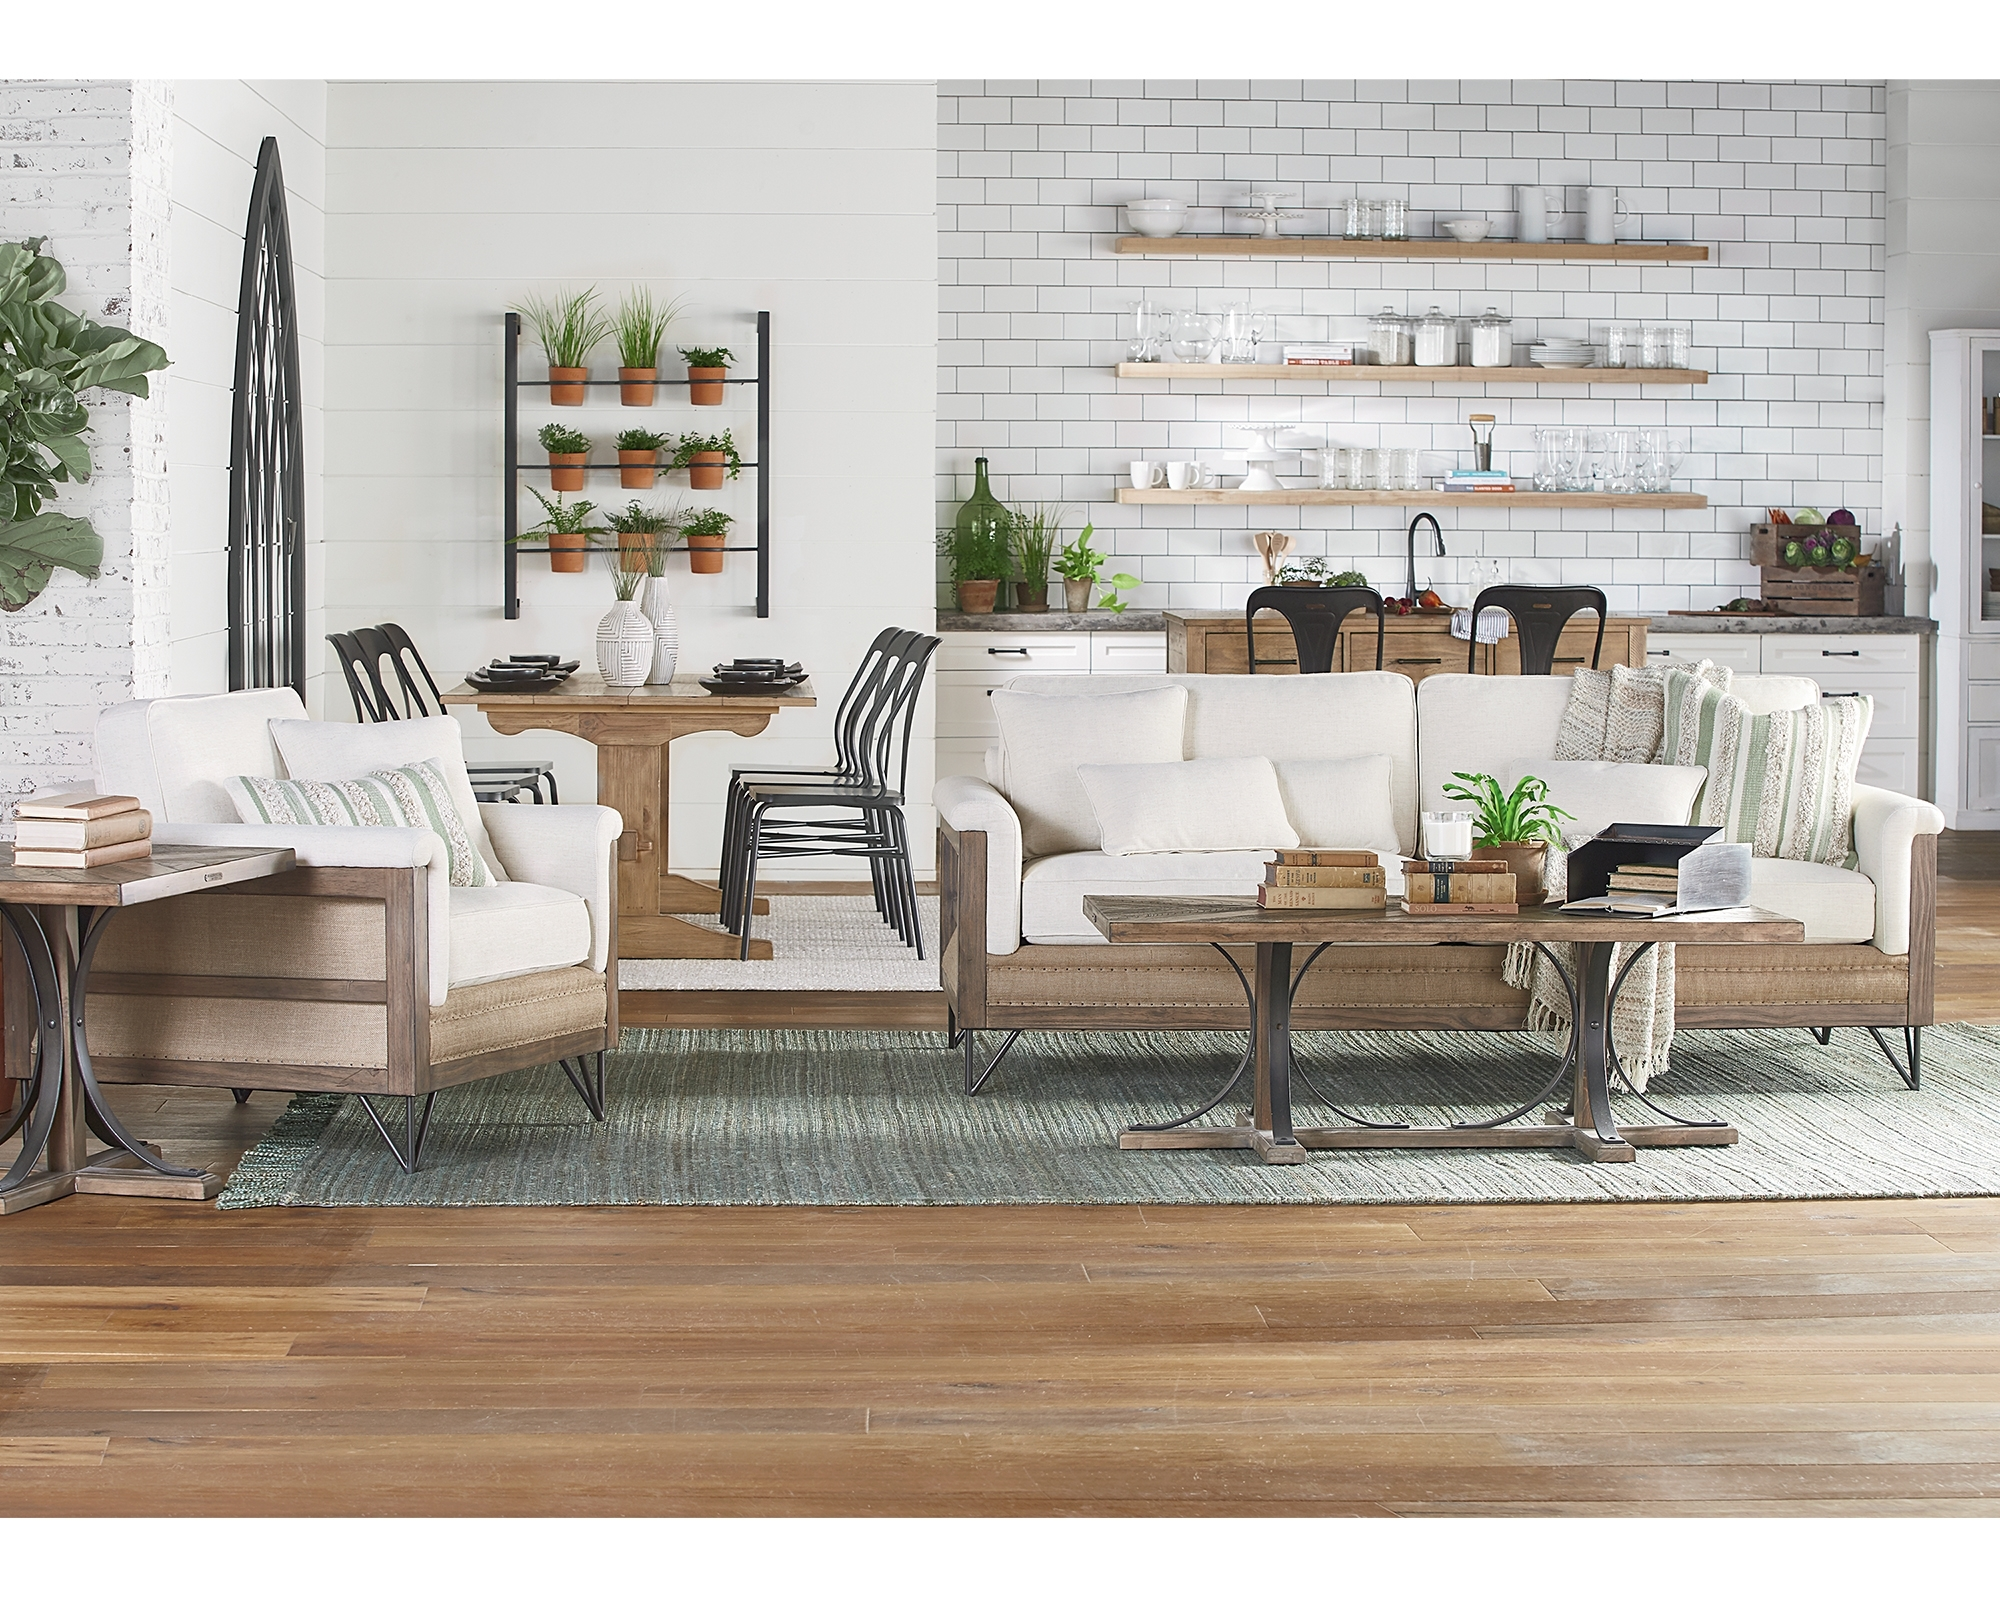 Iron Trestle Coffee Table Magnolia Home Pertaining To Most Up To Date Magnolia Home Shop Floor Dining Tables With Iron Trestle (Image 8 of 20)